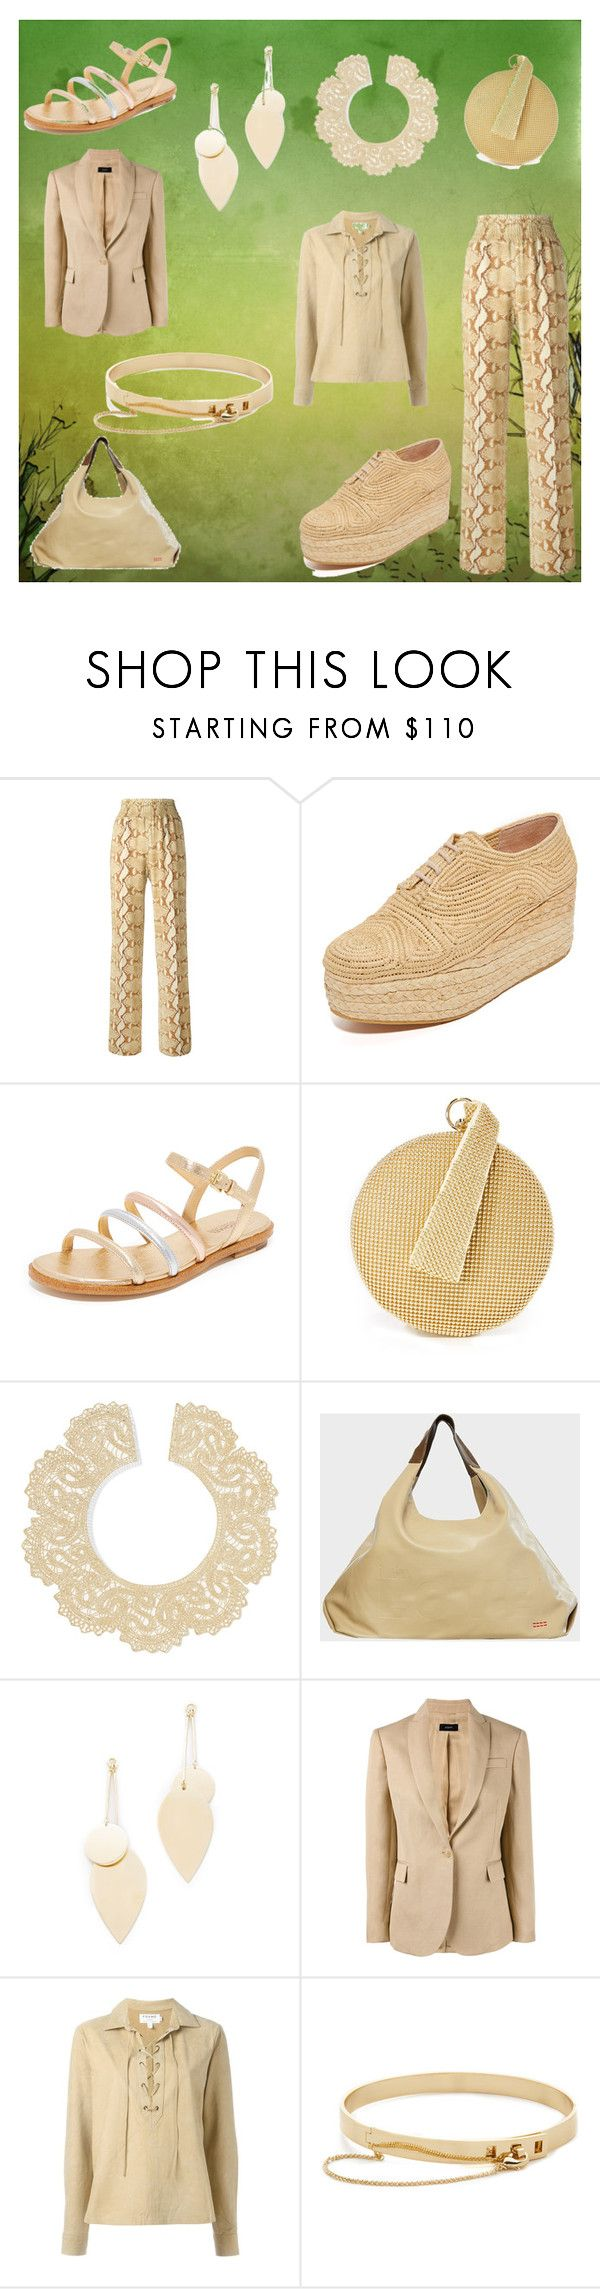 """""""Romwe"""" by ramakumari ❤ liked on Polyvore featuring Givenchy, Robert Clergerie, MICHAEL Michael Kors, Valentino, Peace Love World, Elizabeth and James, Joseph, Frame and Eddie Borgo"""